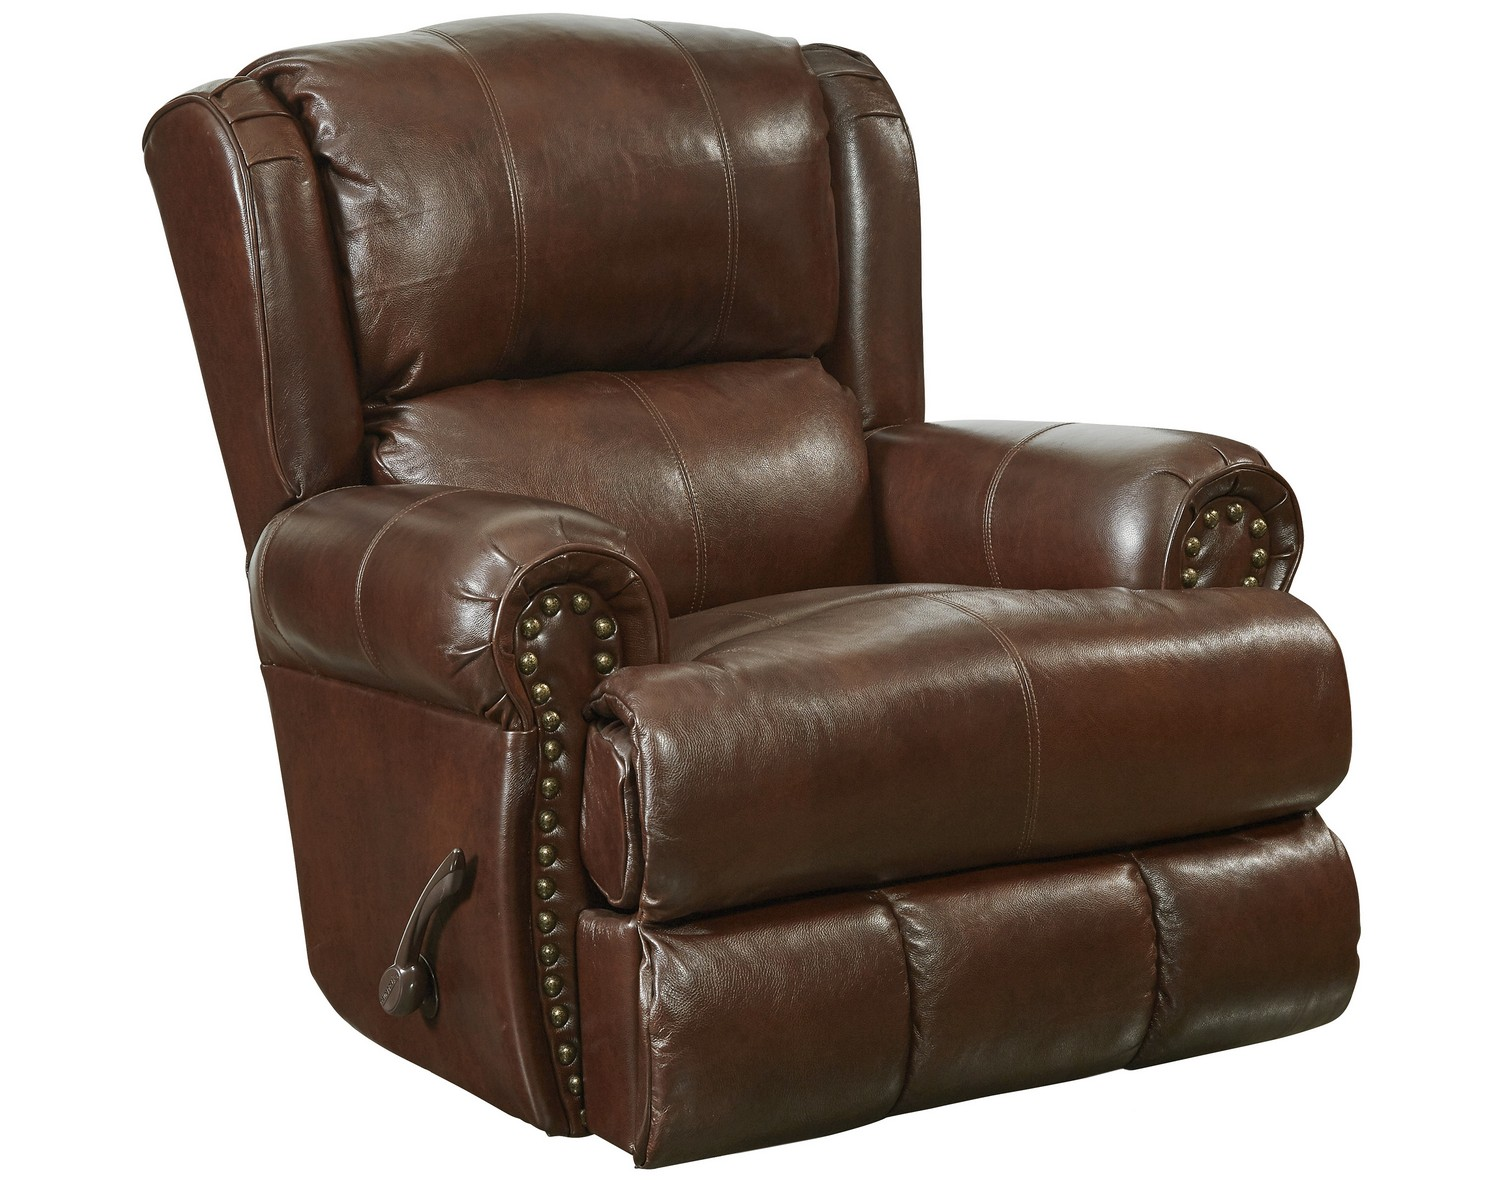 Catnapper Duncan Top Grain Leather Touch Deluxe Glider